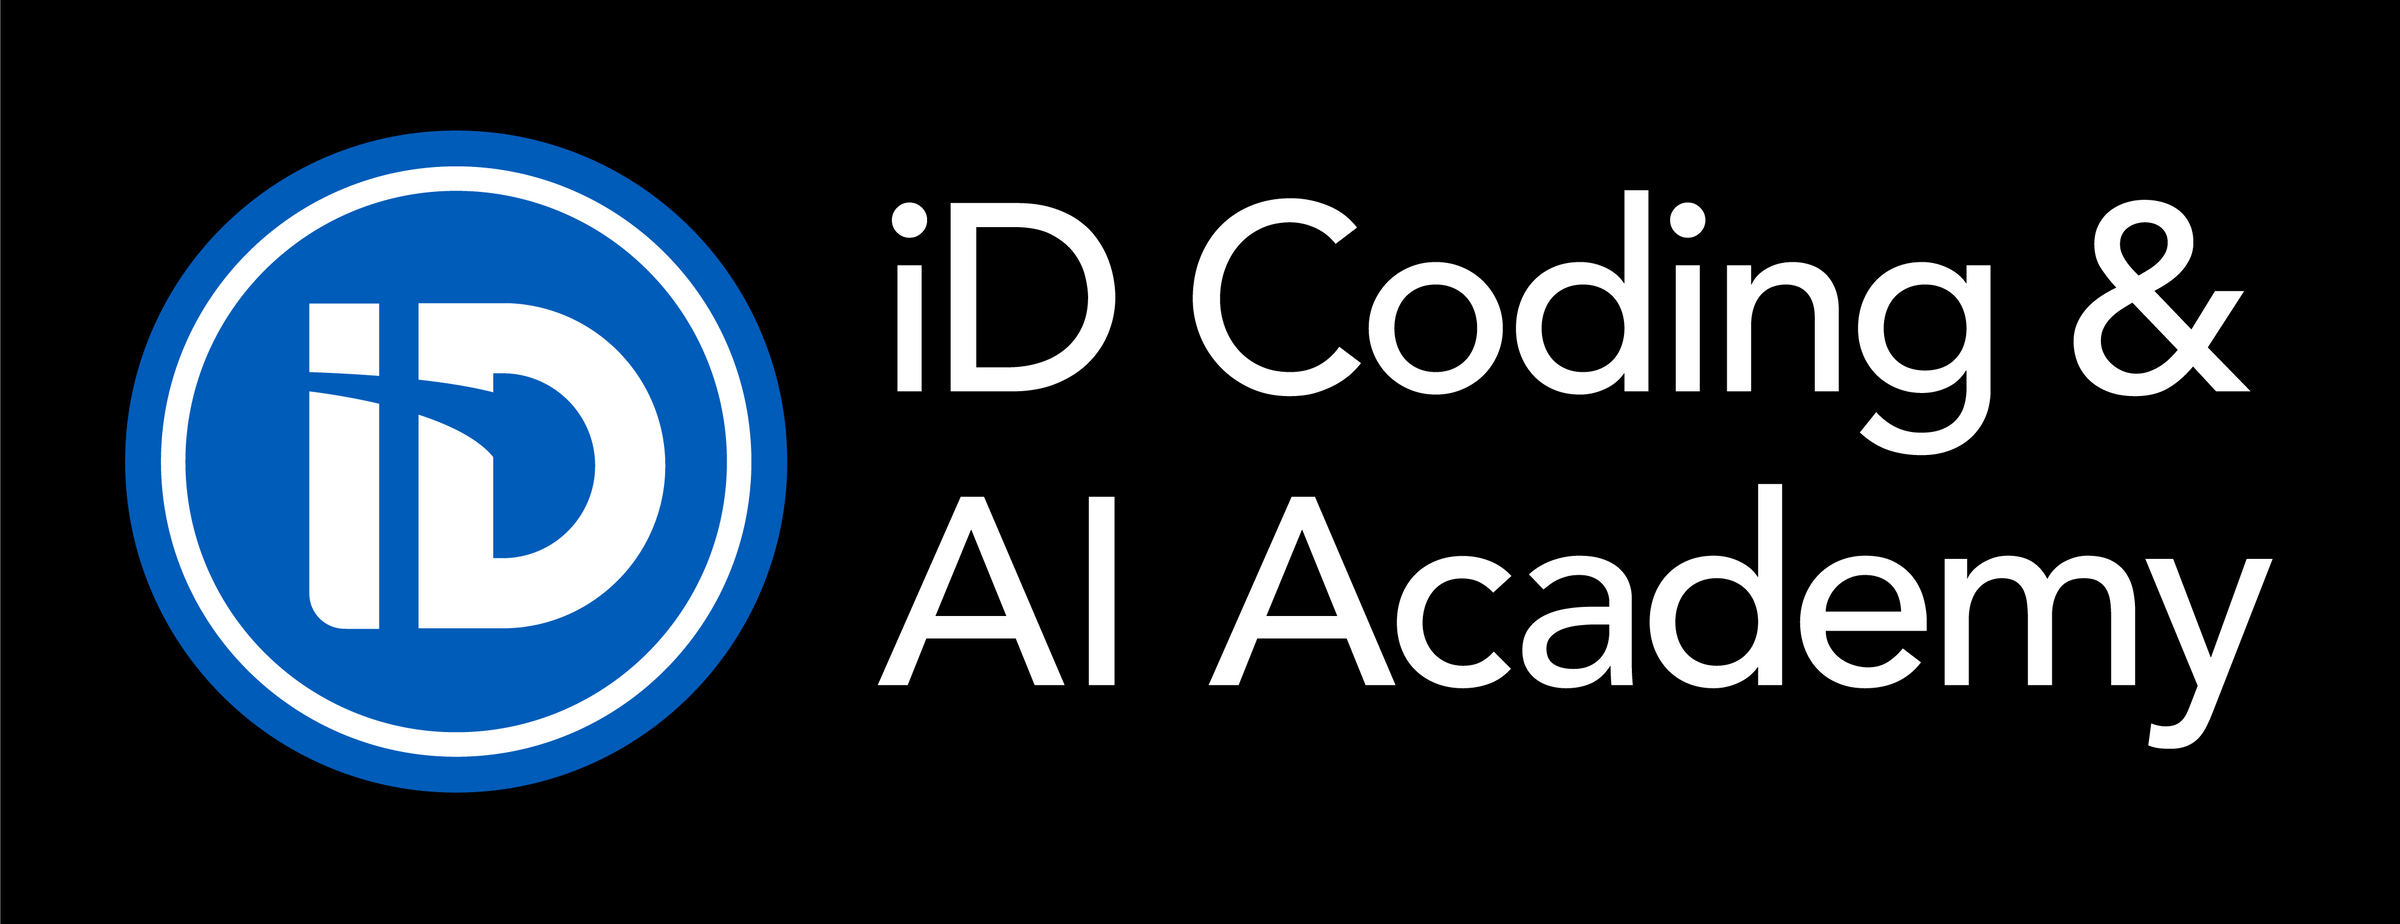 iD Coding & AI Academy for Teens - Held at Lake Forest College